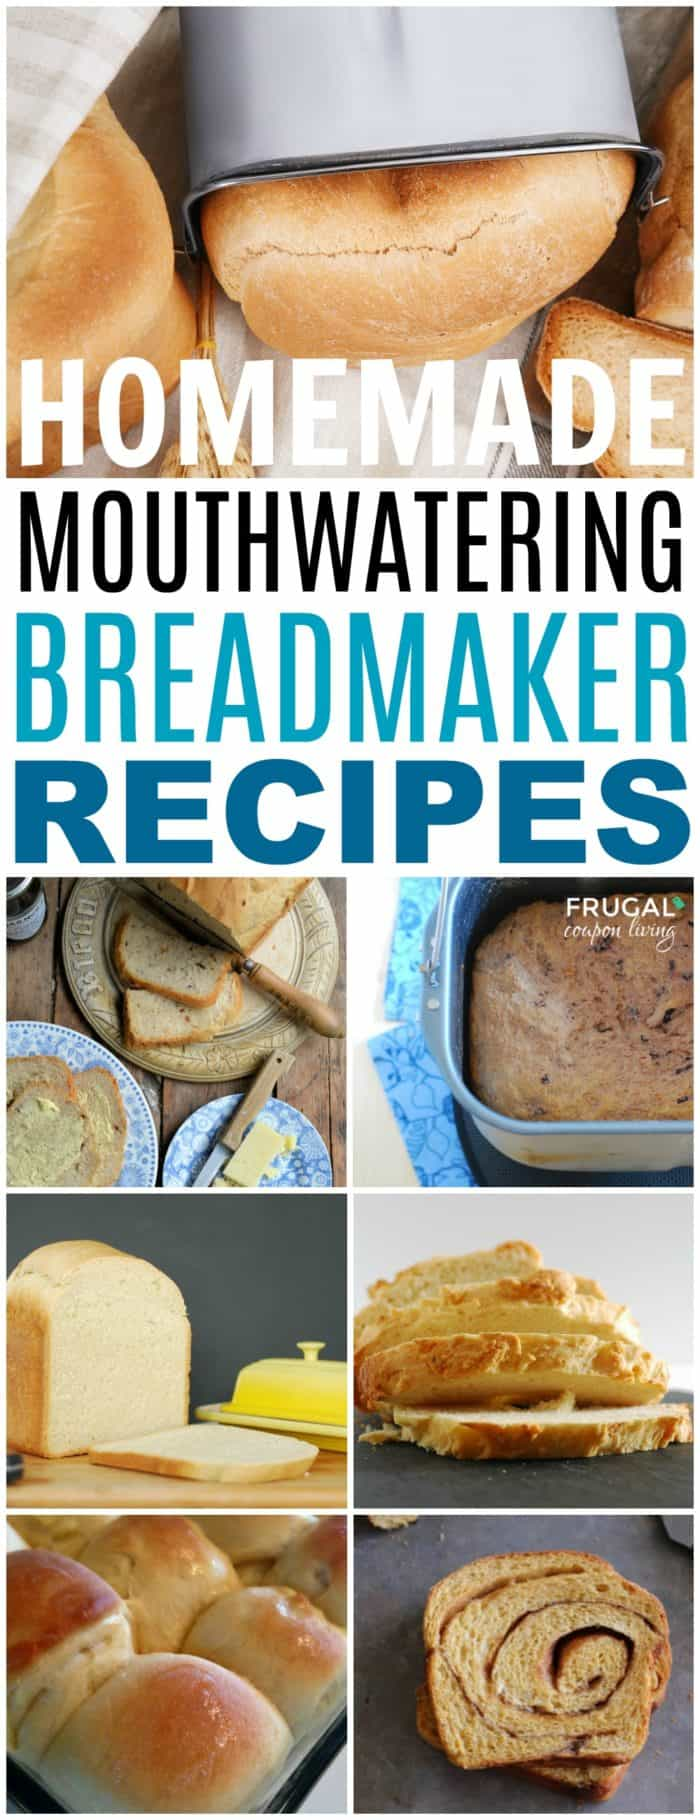 The Best Breadmaker Recipes